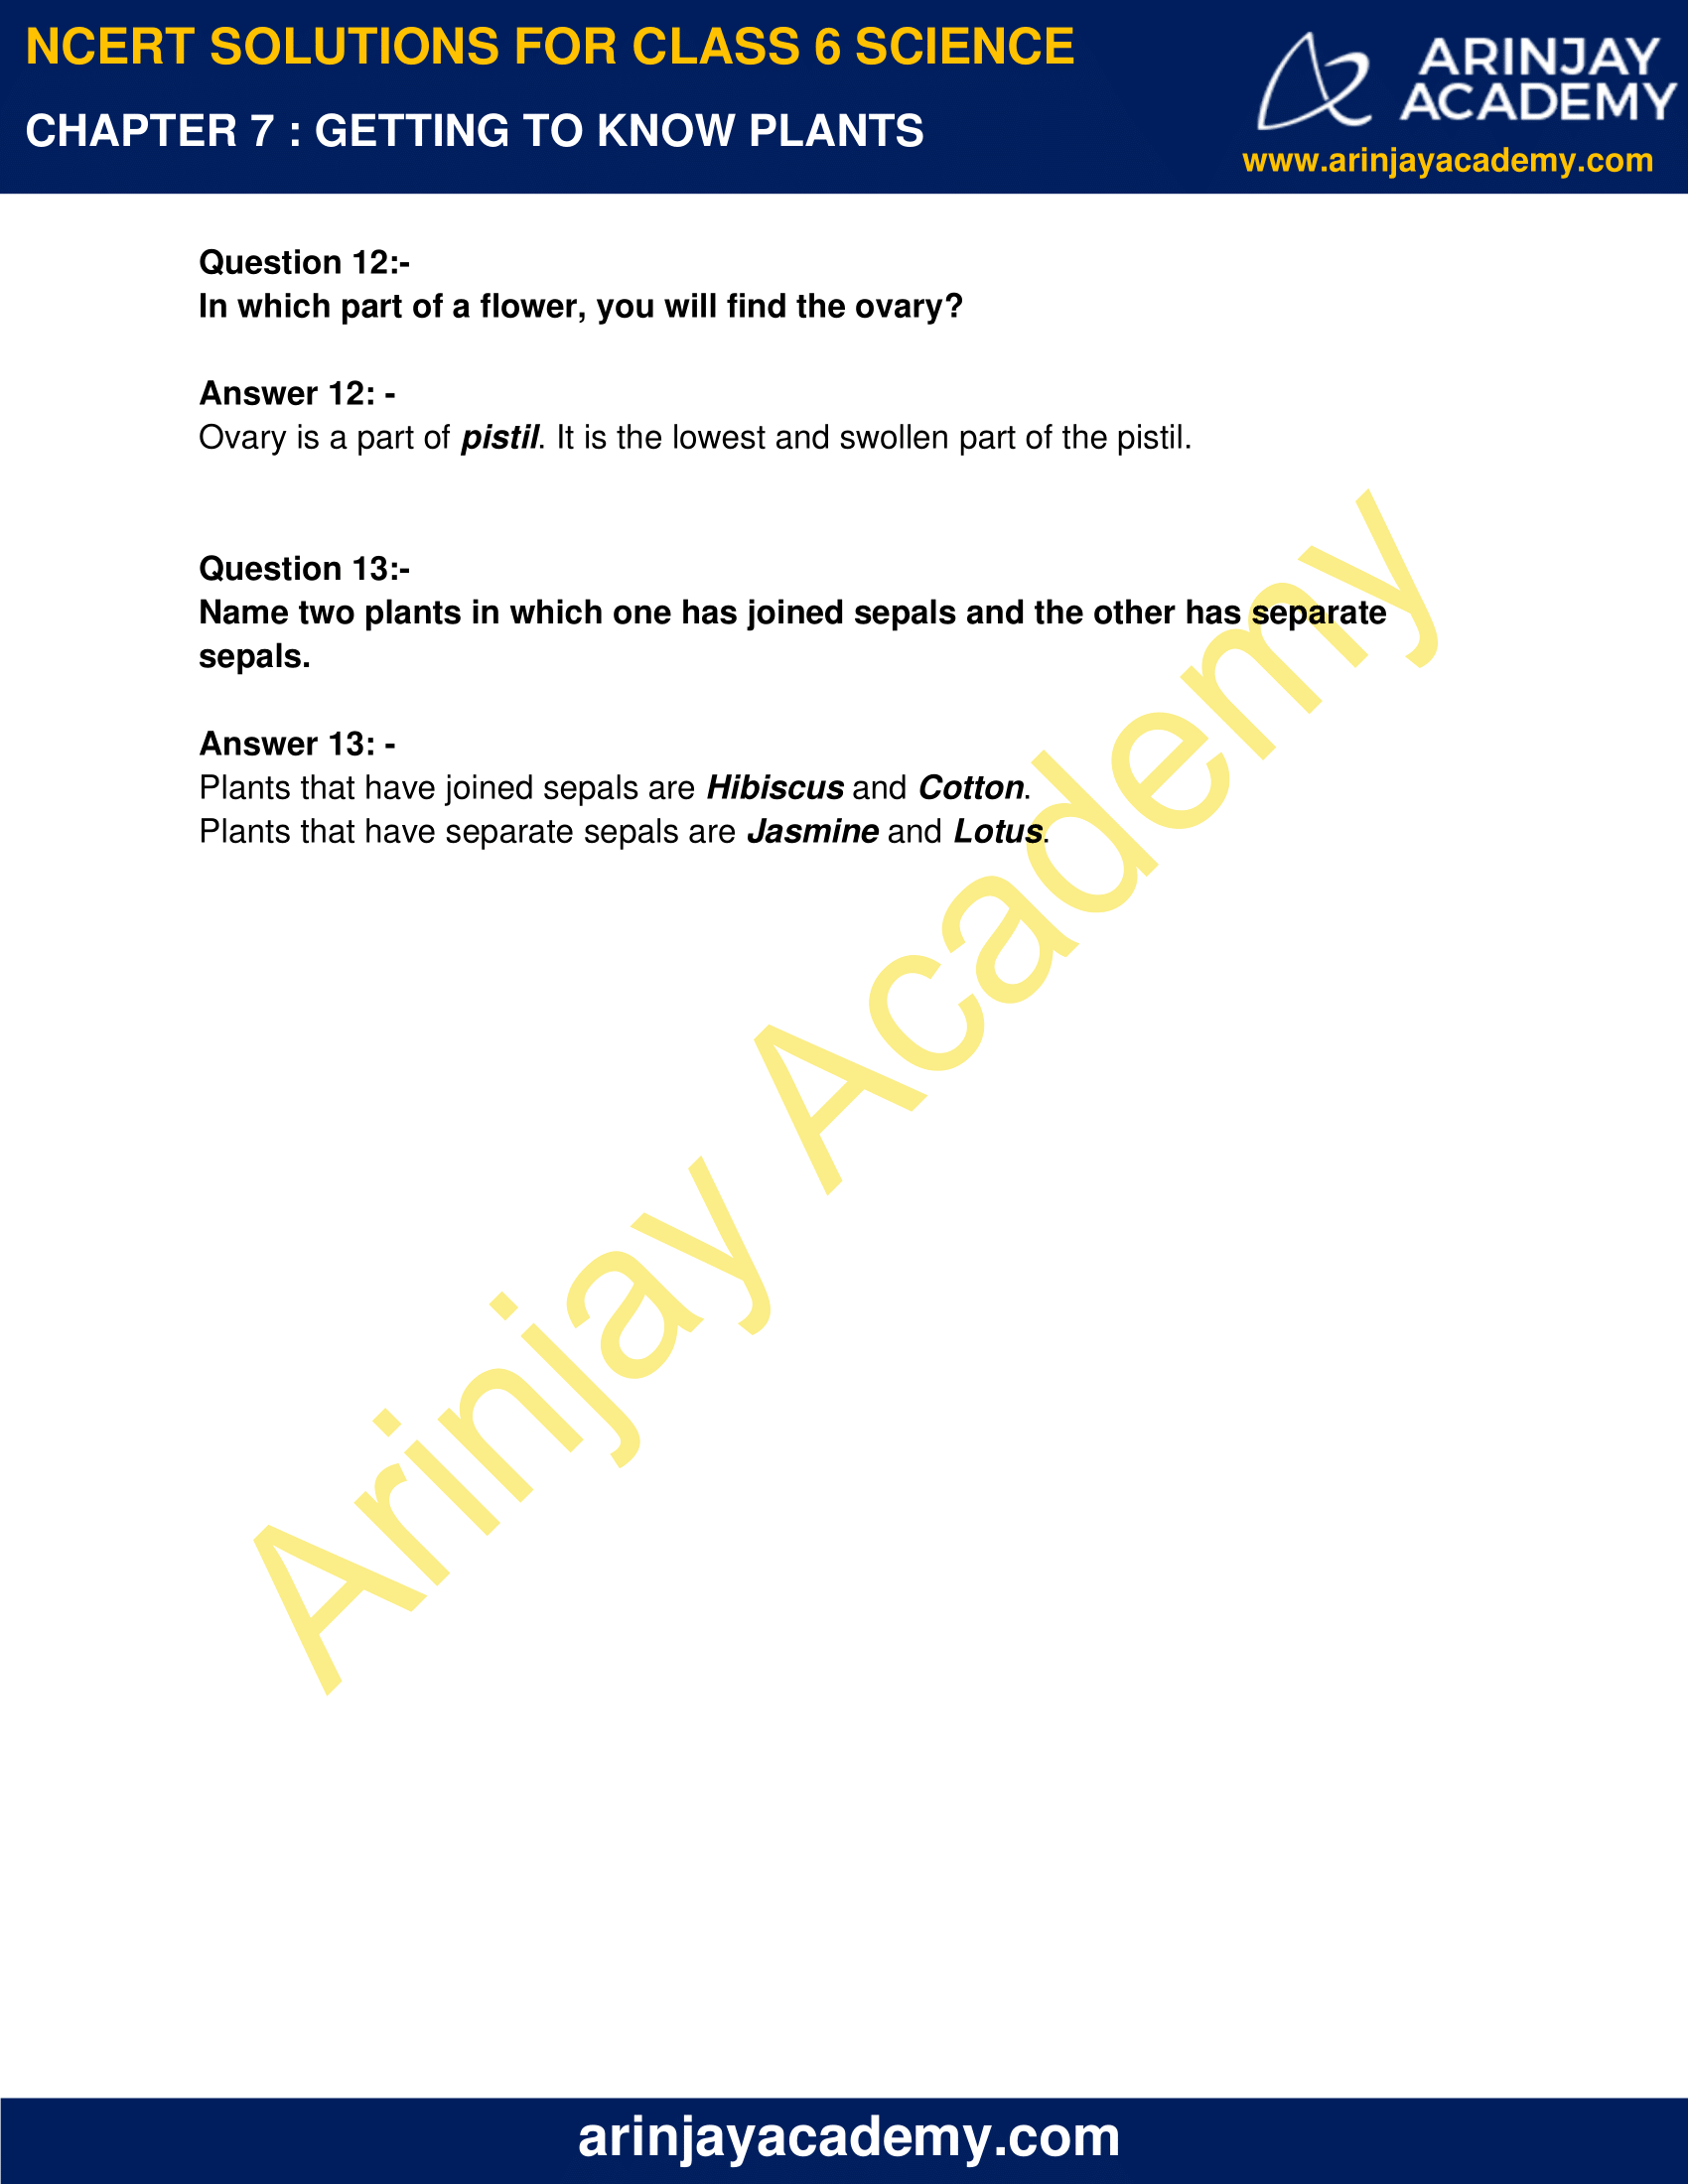 NCERT Solutions for Class 6 Science Chapter 7 image 5